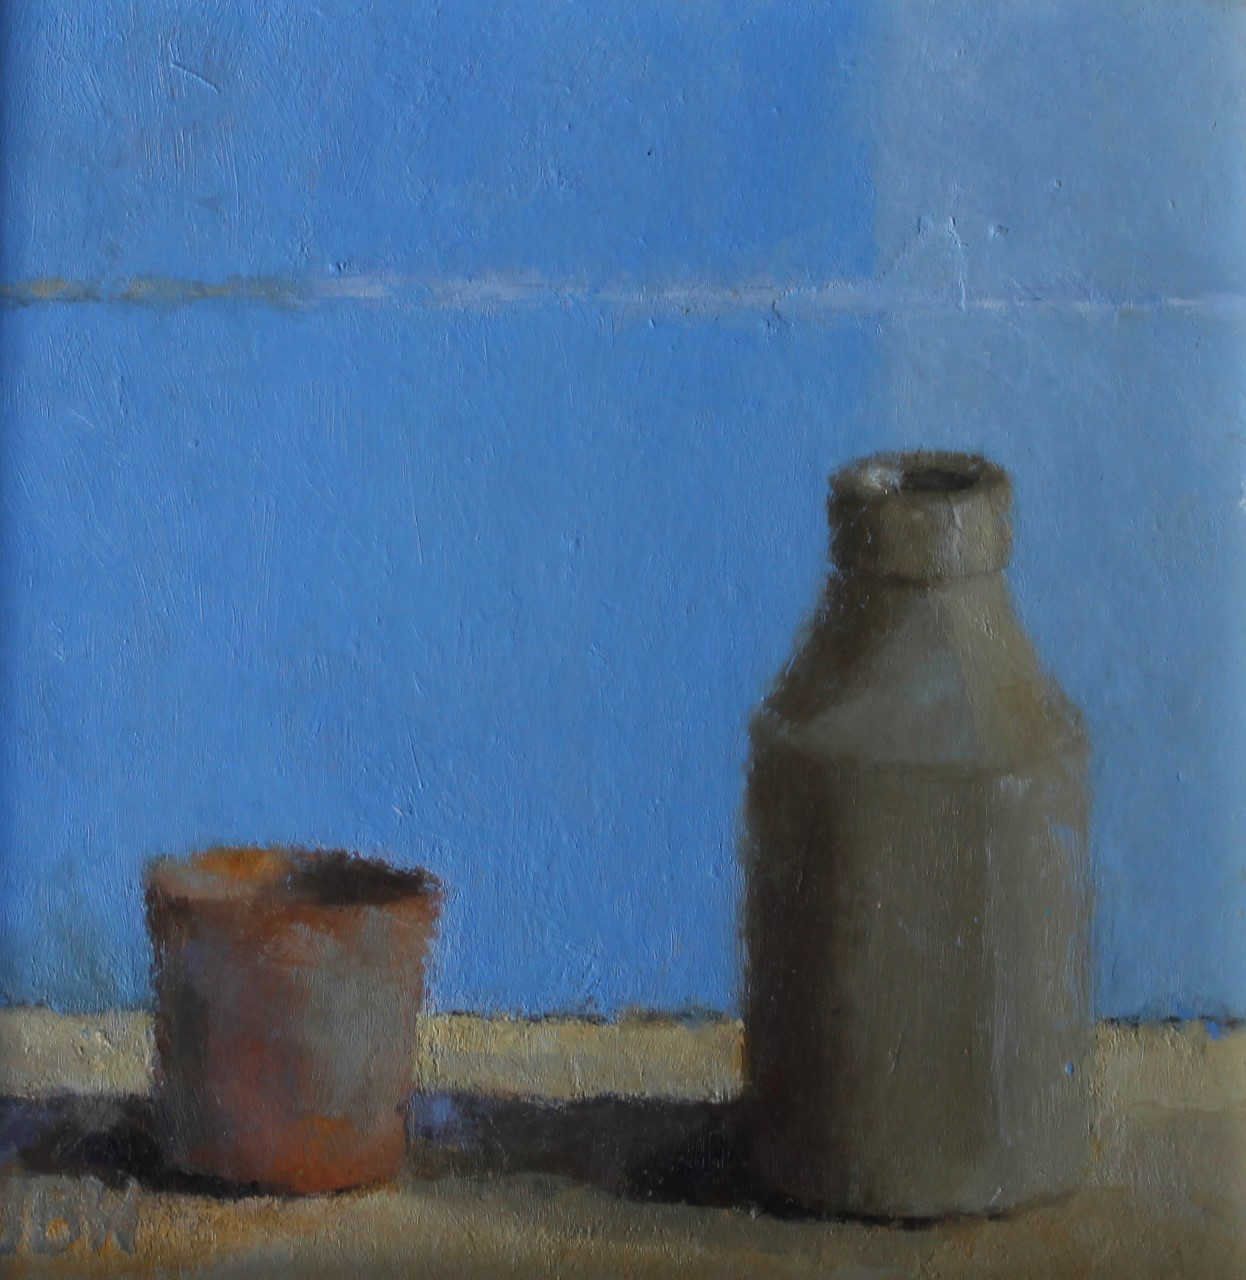 Two Pots Blue  Oil on board  20x20cm